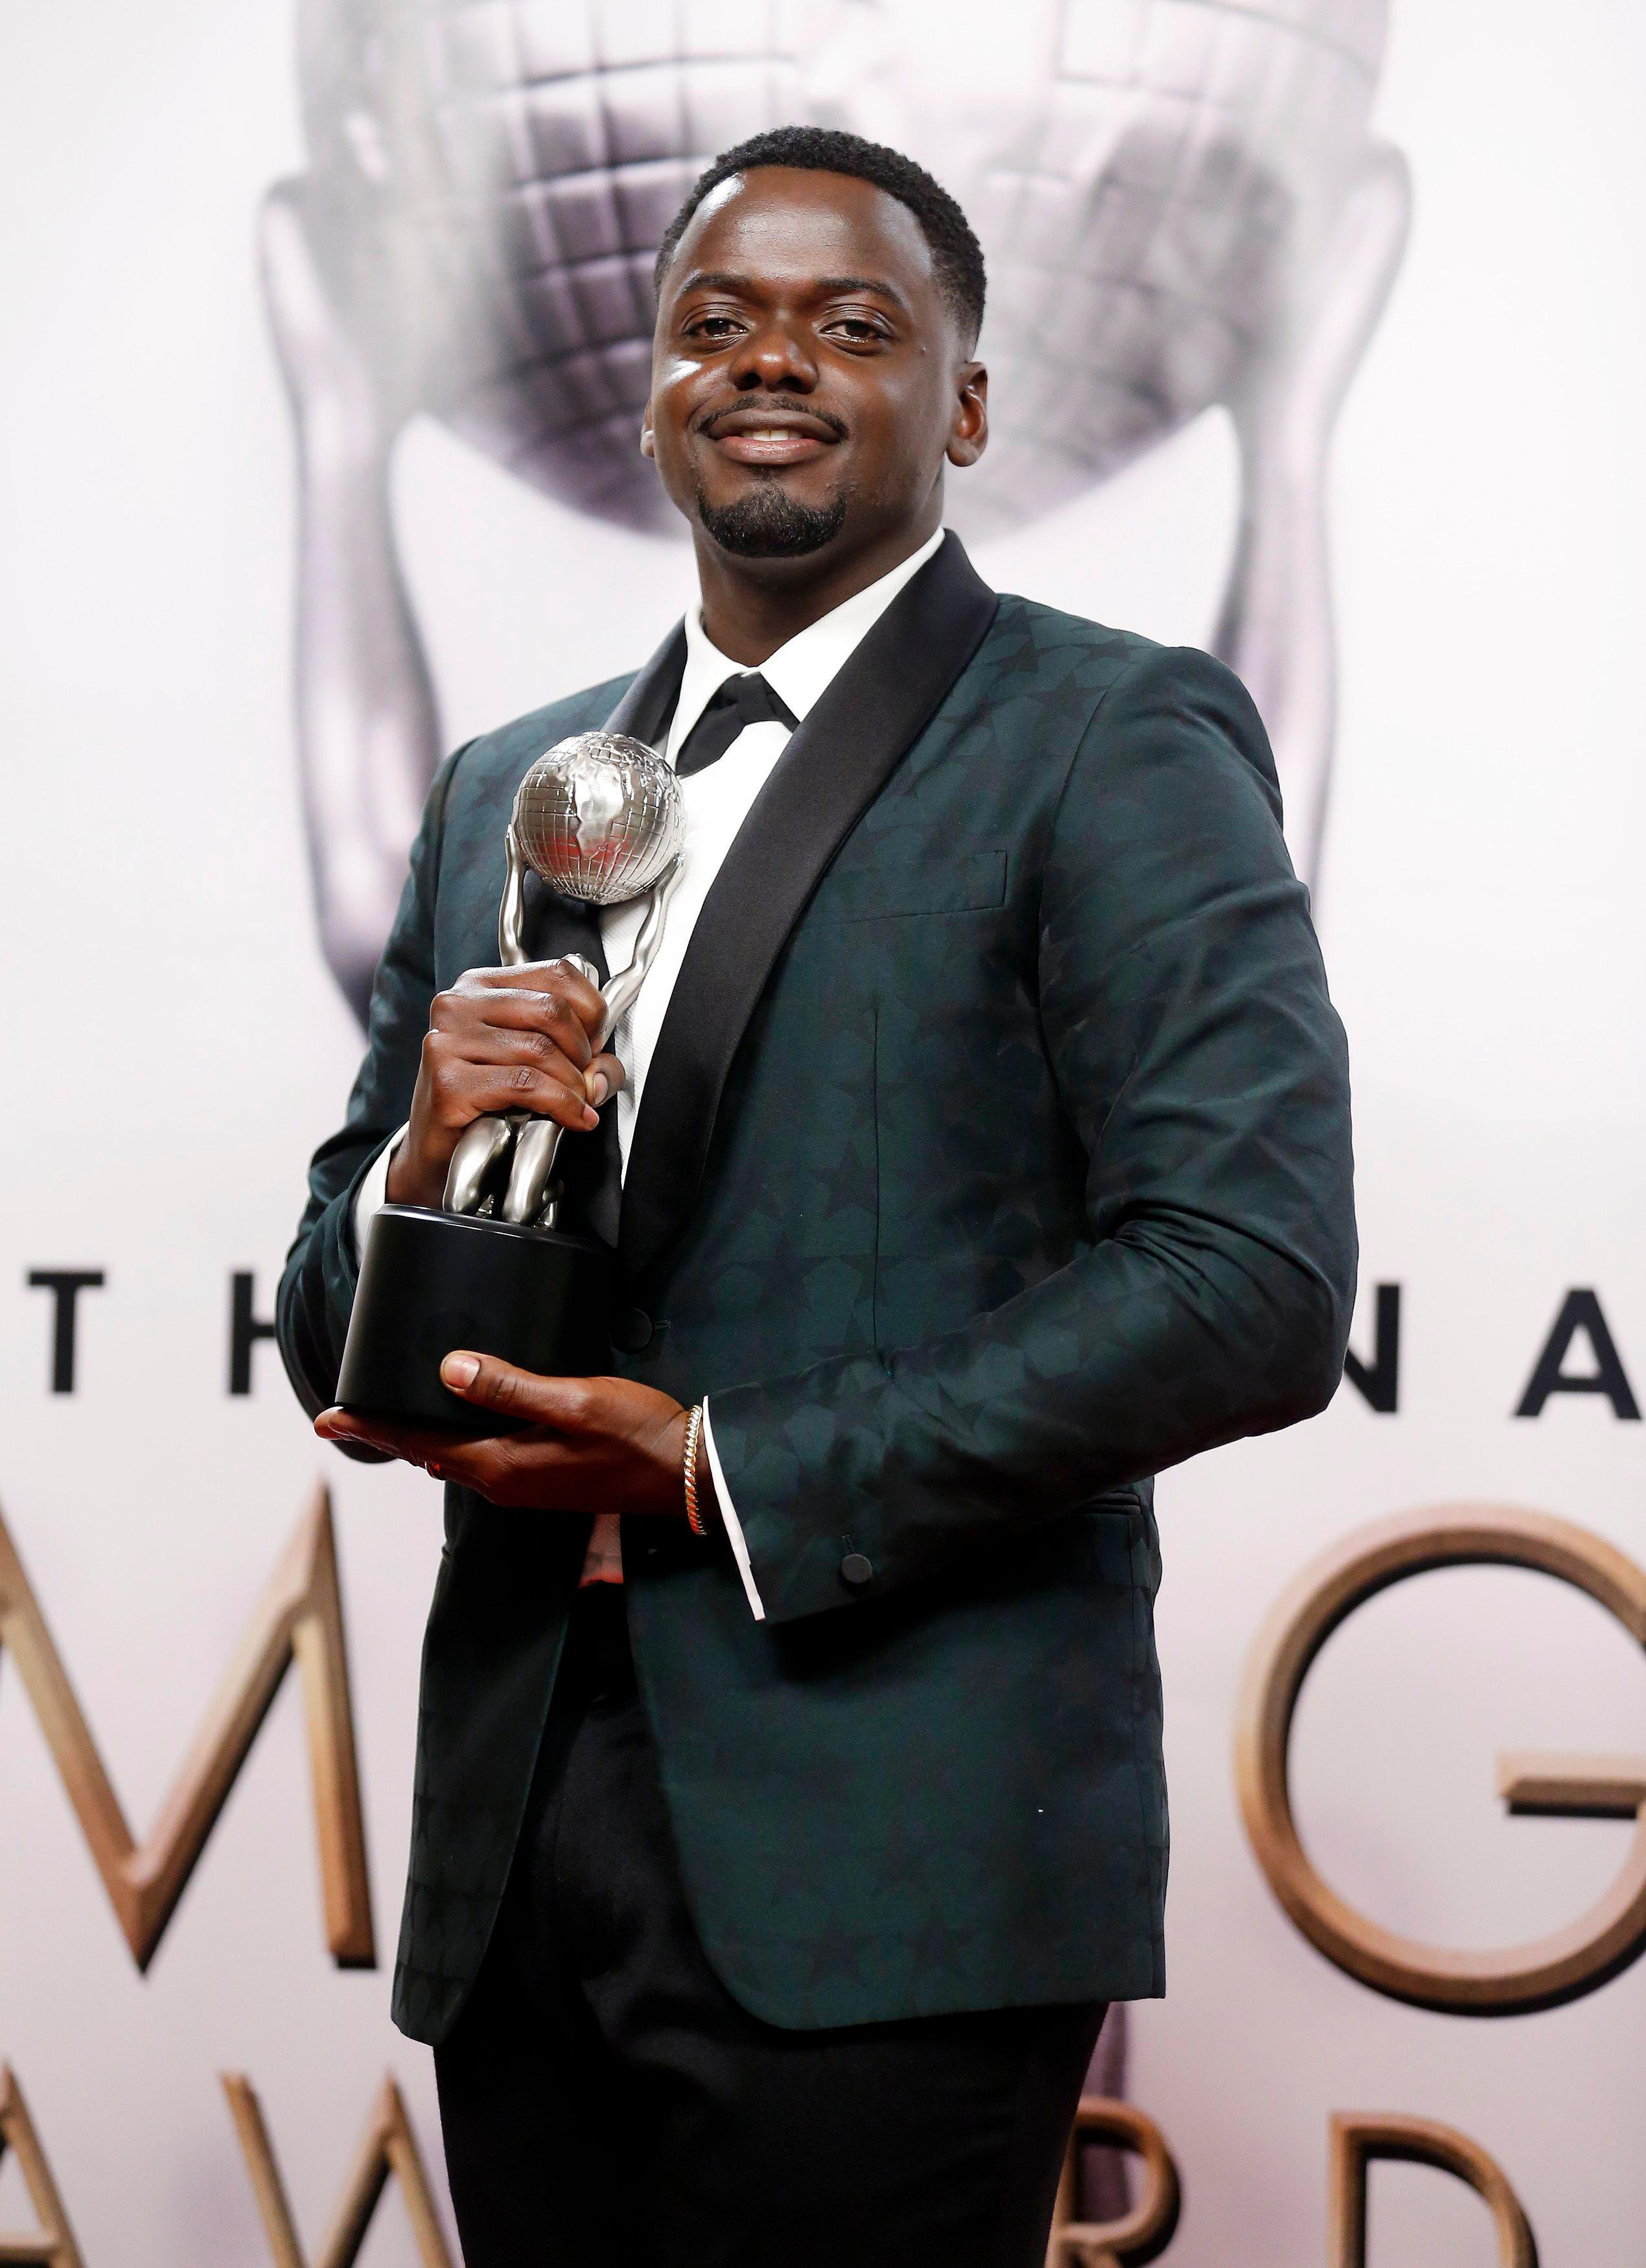 Who is Daniel Kaluuya, who does he play in Black Panther, was he in Black Mirror and who's his girlfriend?